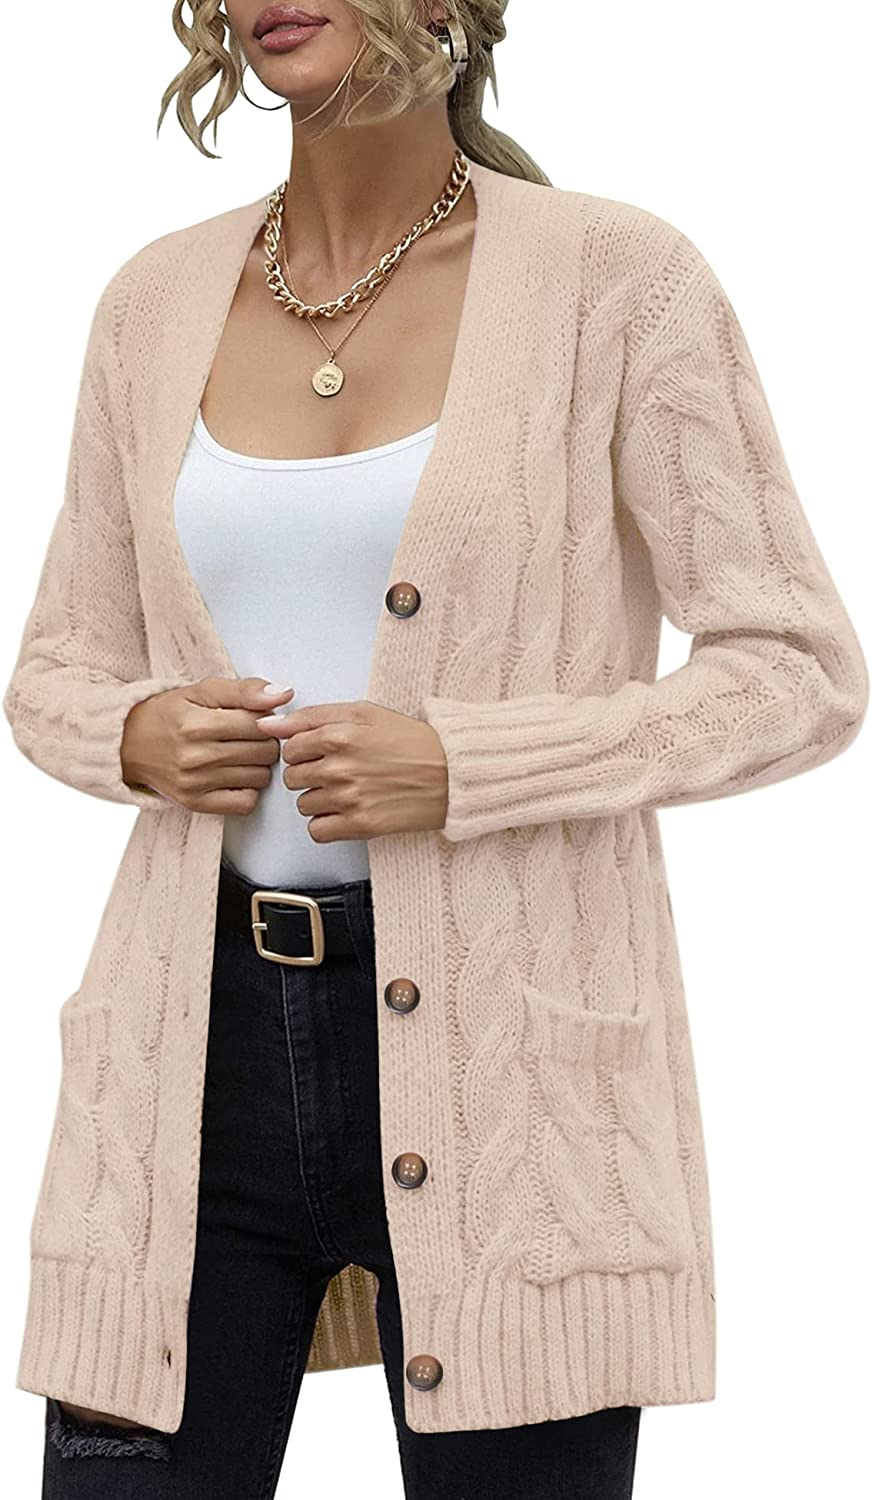 Women's Long Sleeve Cable Knit Sweater Open Front Cardigan Button Loose Casual Outerwear with Pockets